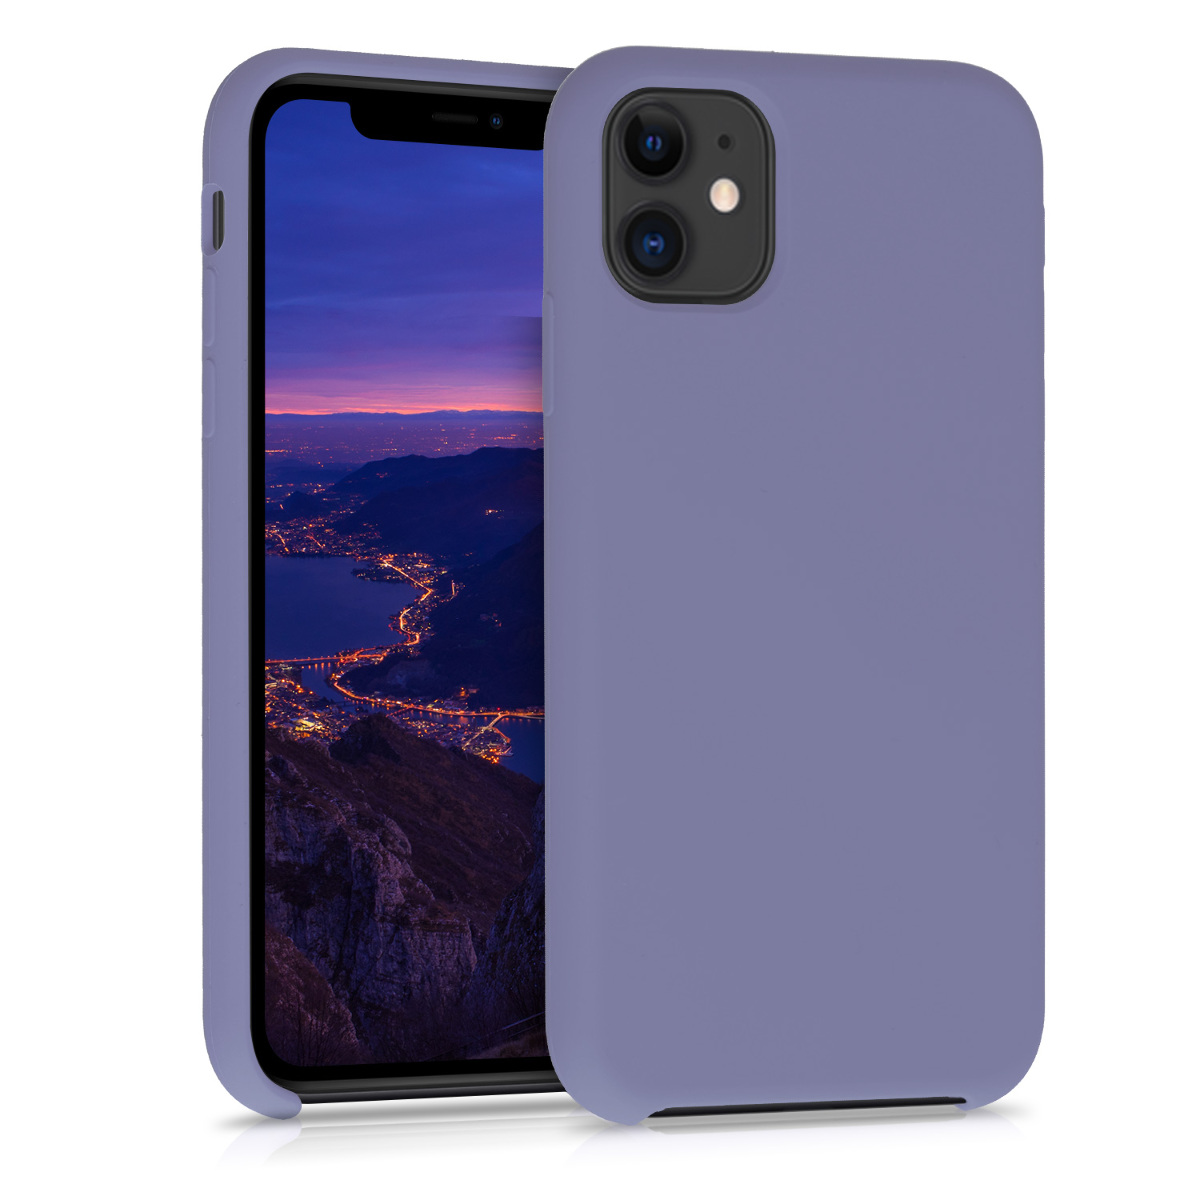 KW Θήκη Σιλικόνης Apple iPhone 11 - Soft Flexible Rubber - Lavender Grey (49724.130)